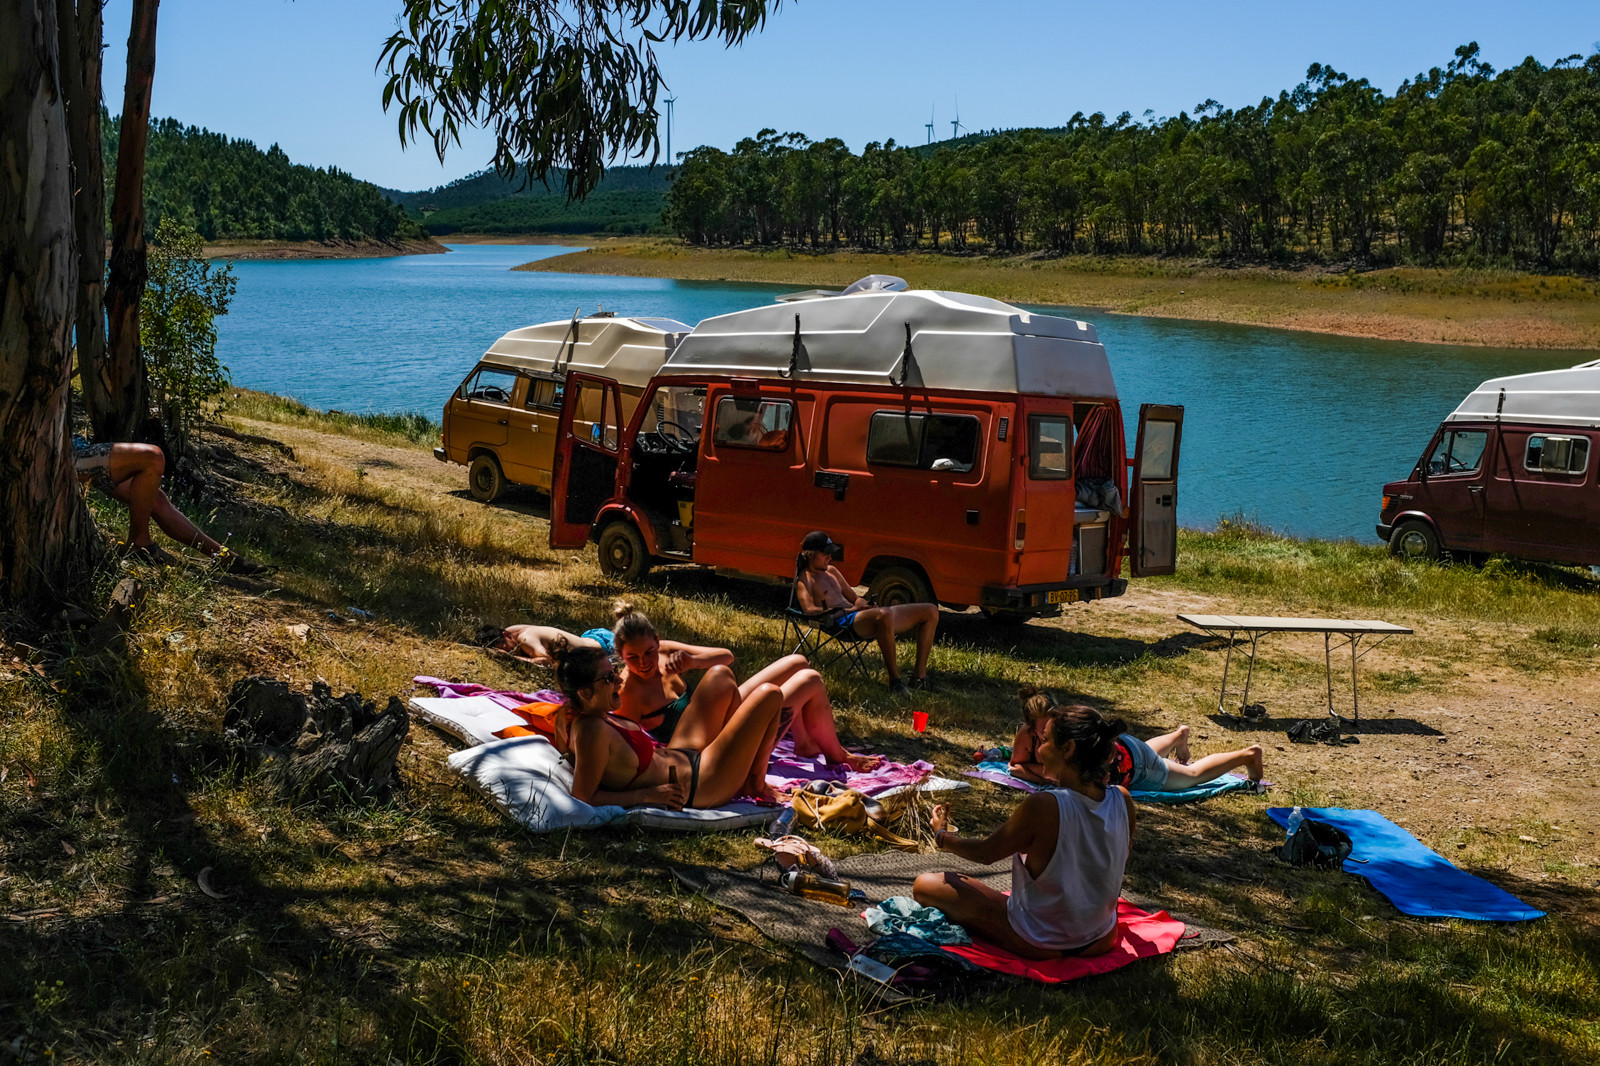 PHOTOGRaphy camper retreat portugal